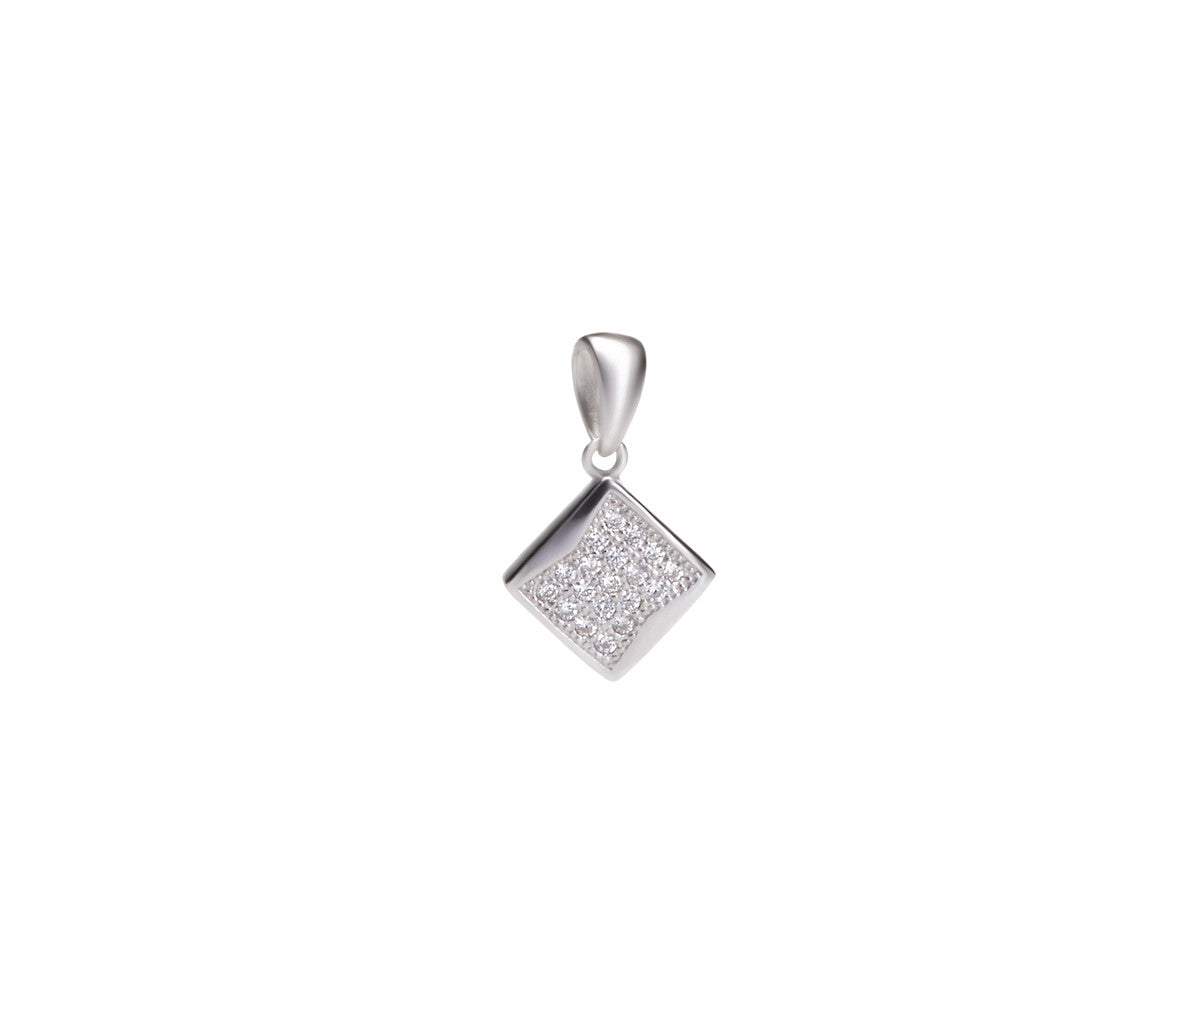 Silver Necklace with Rhombus/Square Pendant